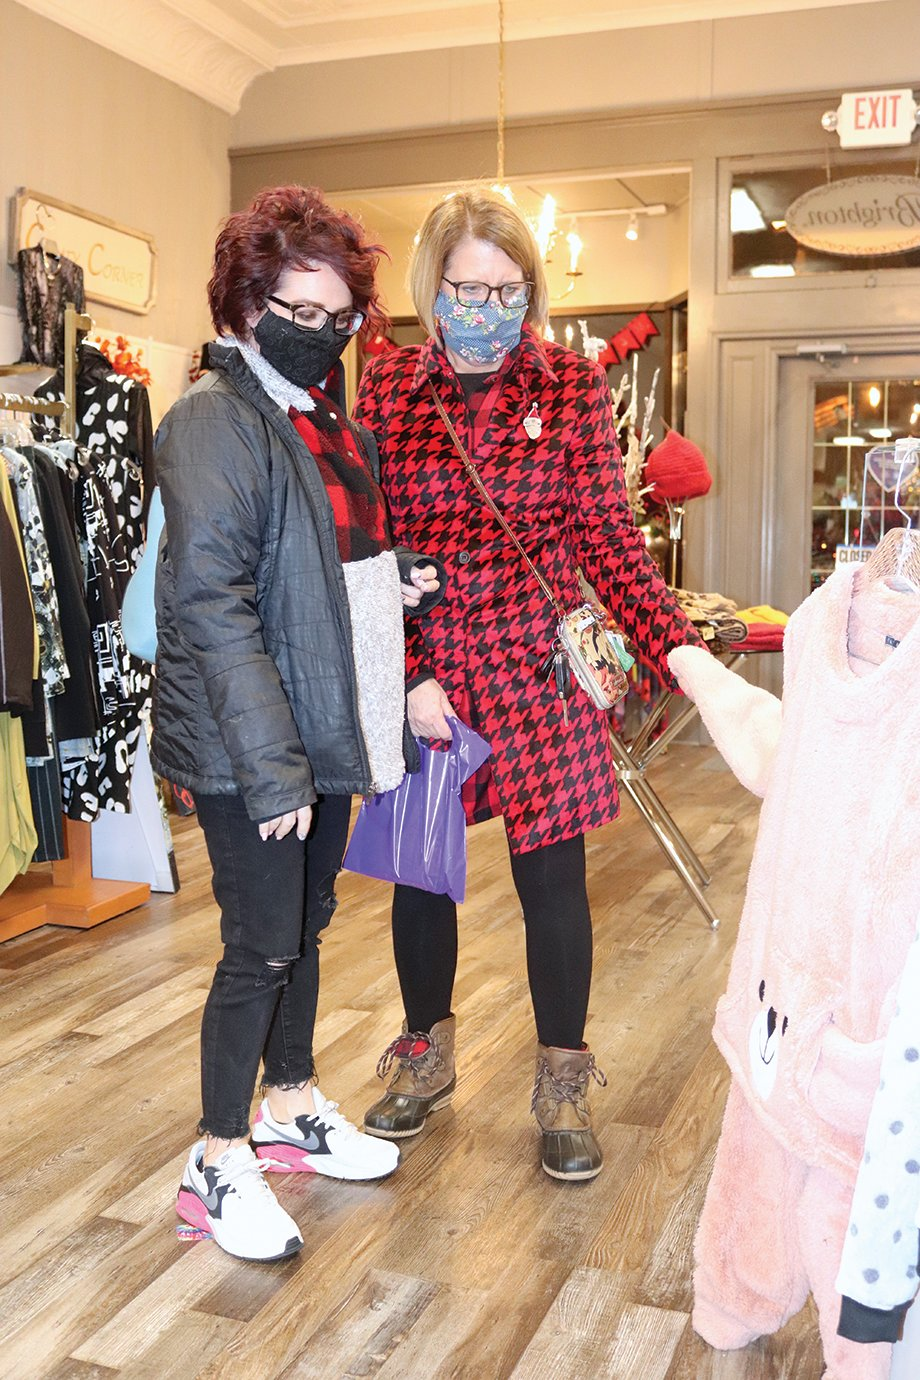 Lindsay Williamson, left, and Jennifer Lowe shop for holiday savings Saturday at Heathcliff's downtown. Many businesses and restaurants extended their hours and Black Friday deals, creating a bustling downtown for Shop Small Saturday.